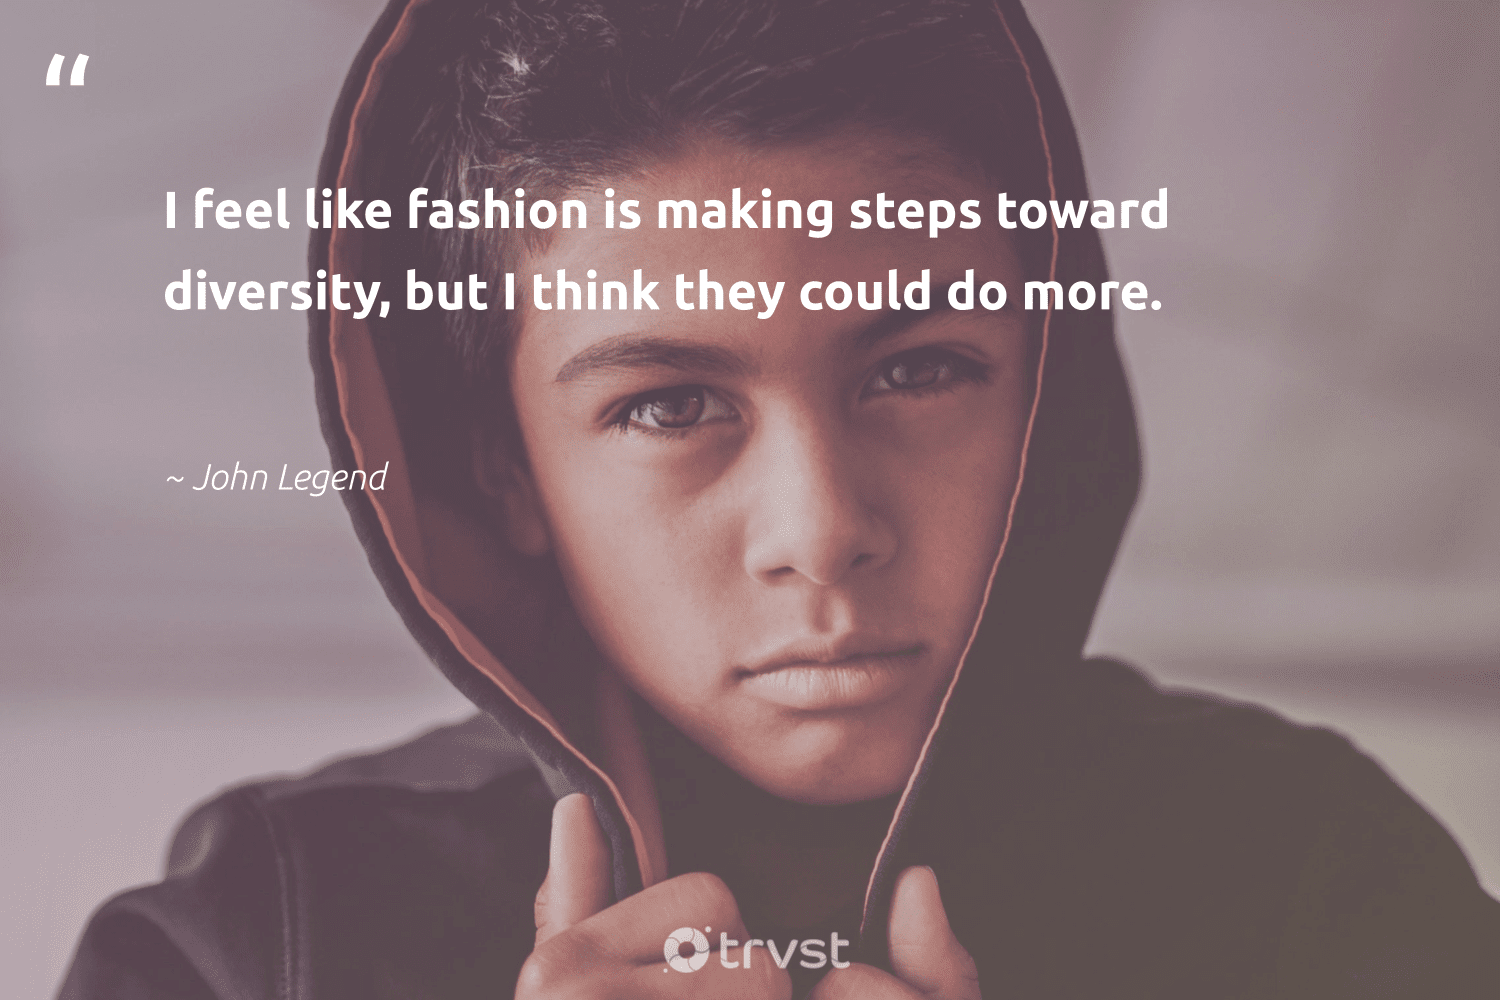 """""""I feel like fashion is making steps toward diversity, but I think they could do more.""""  - John Legend #trvst #quotes #diversity #inclusion #discrimination #makeadifference #bethechange #collectiveaction #representationmatters #weareallone #socialgood #gogreen"""